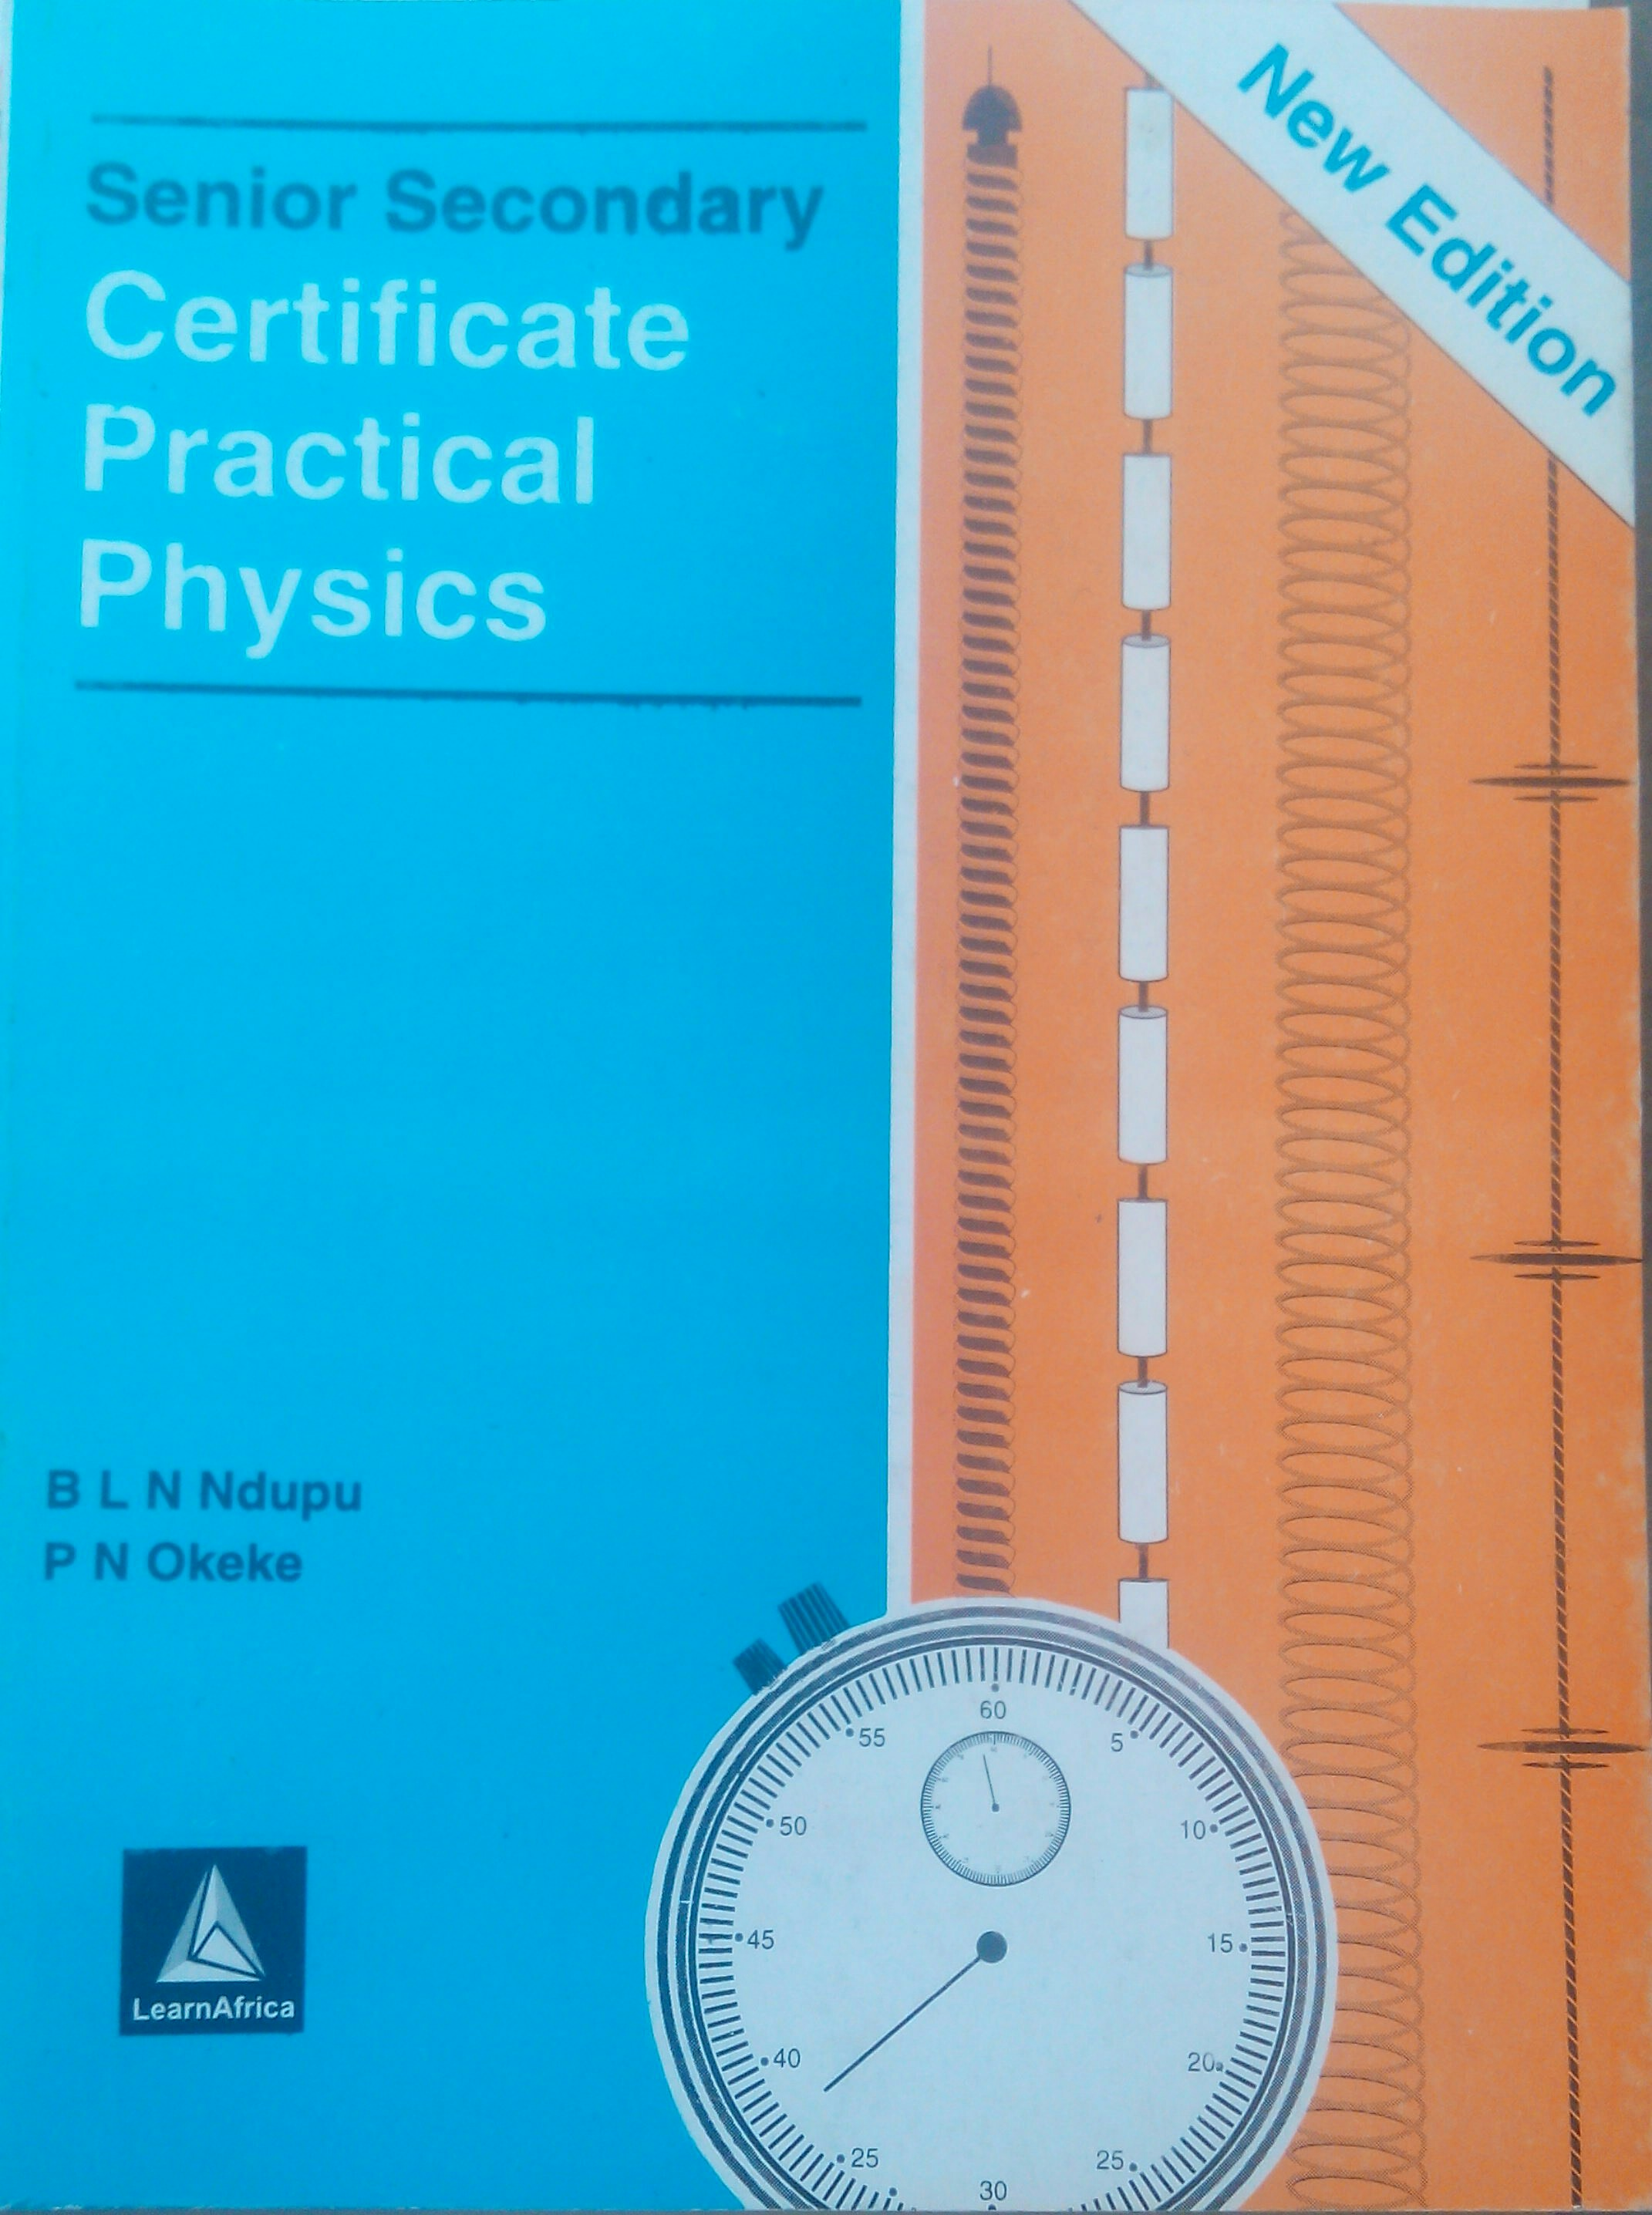 Senior Secondary Certificate Practical Physics